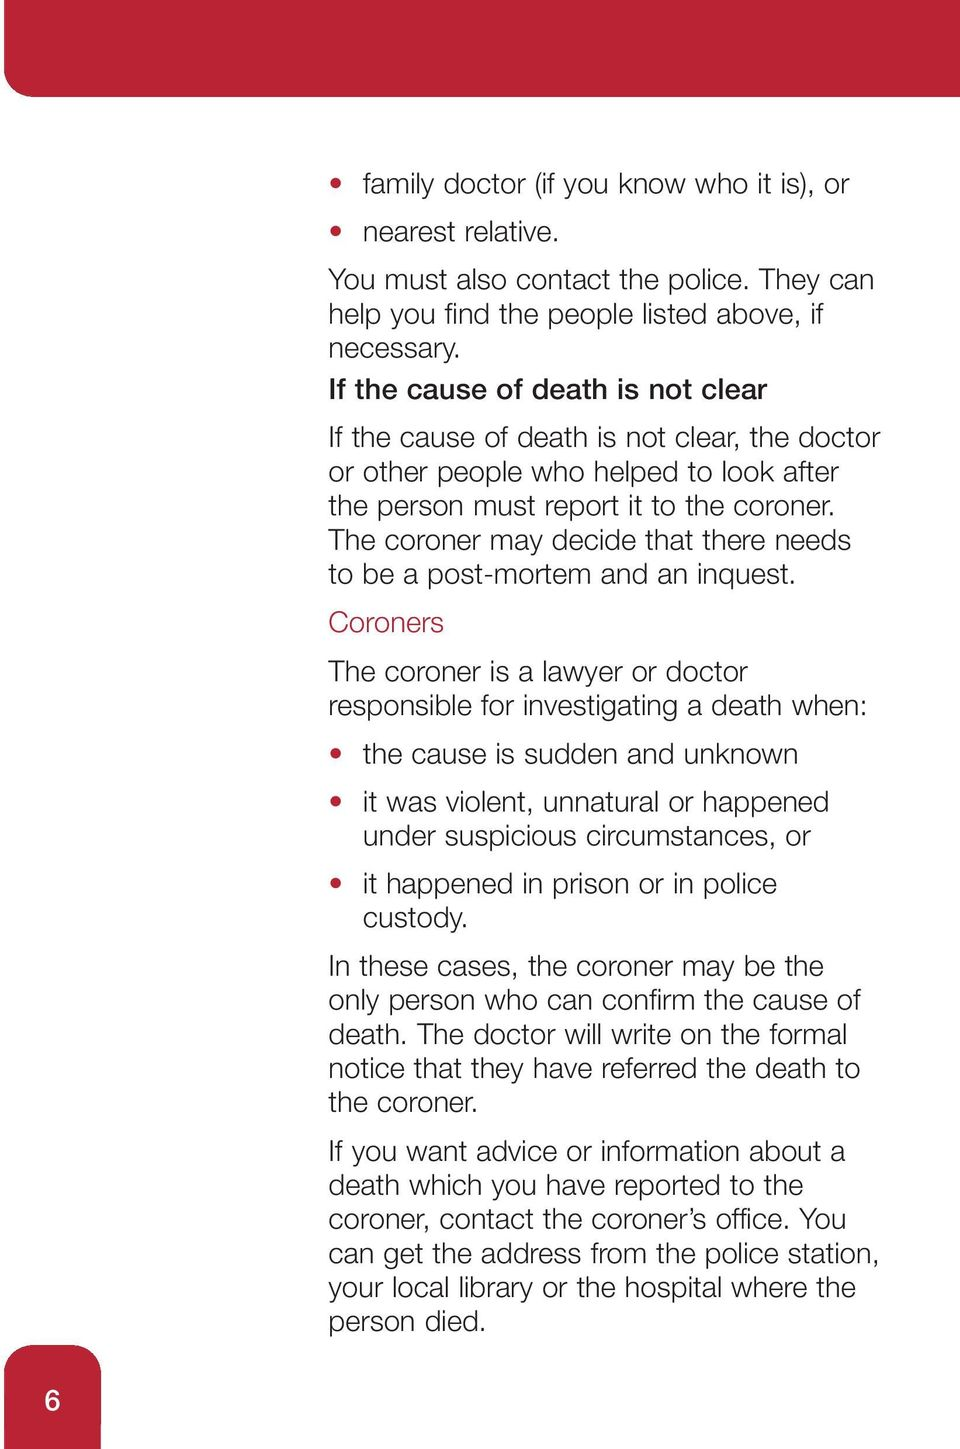 The coroner may decide that there needs to be a post-mortem and an inquest.